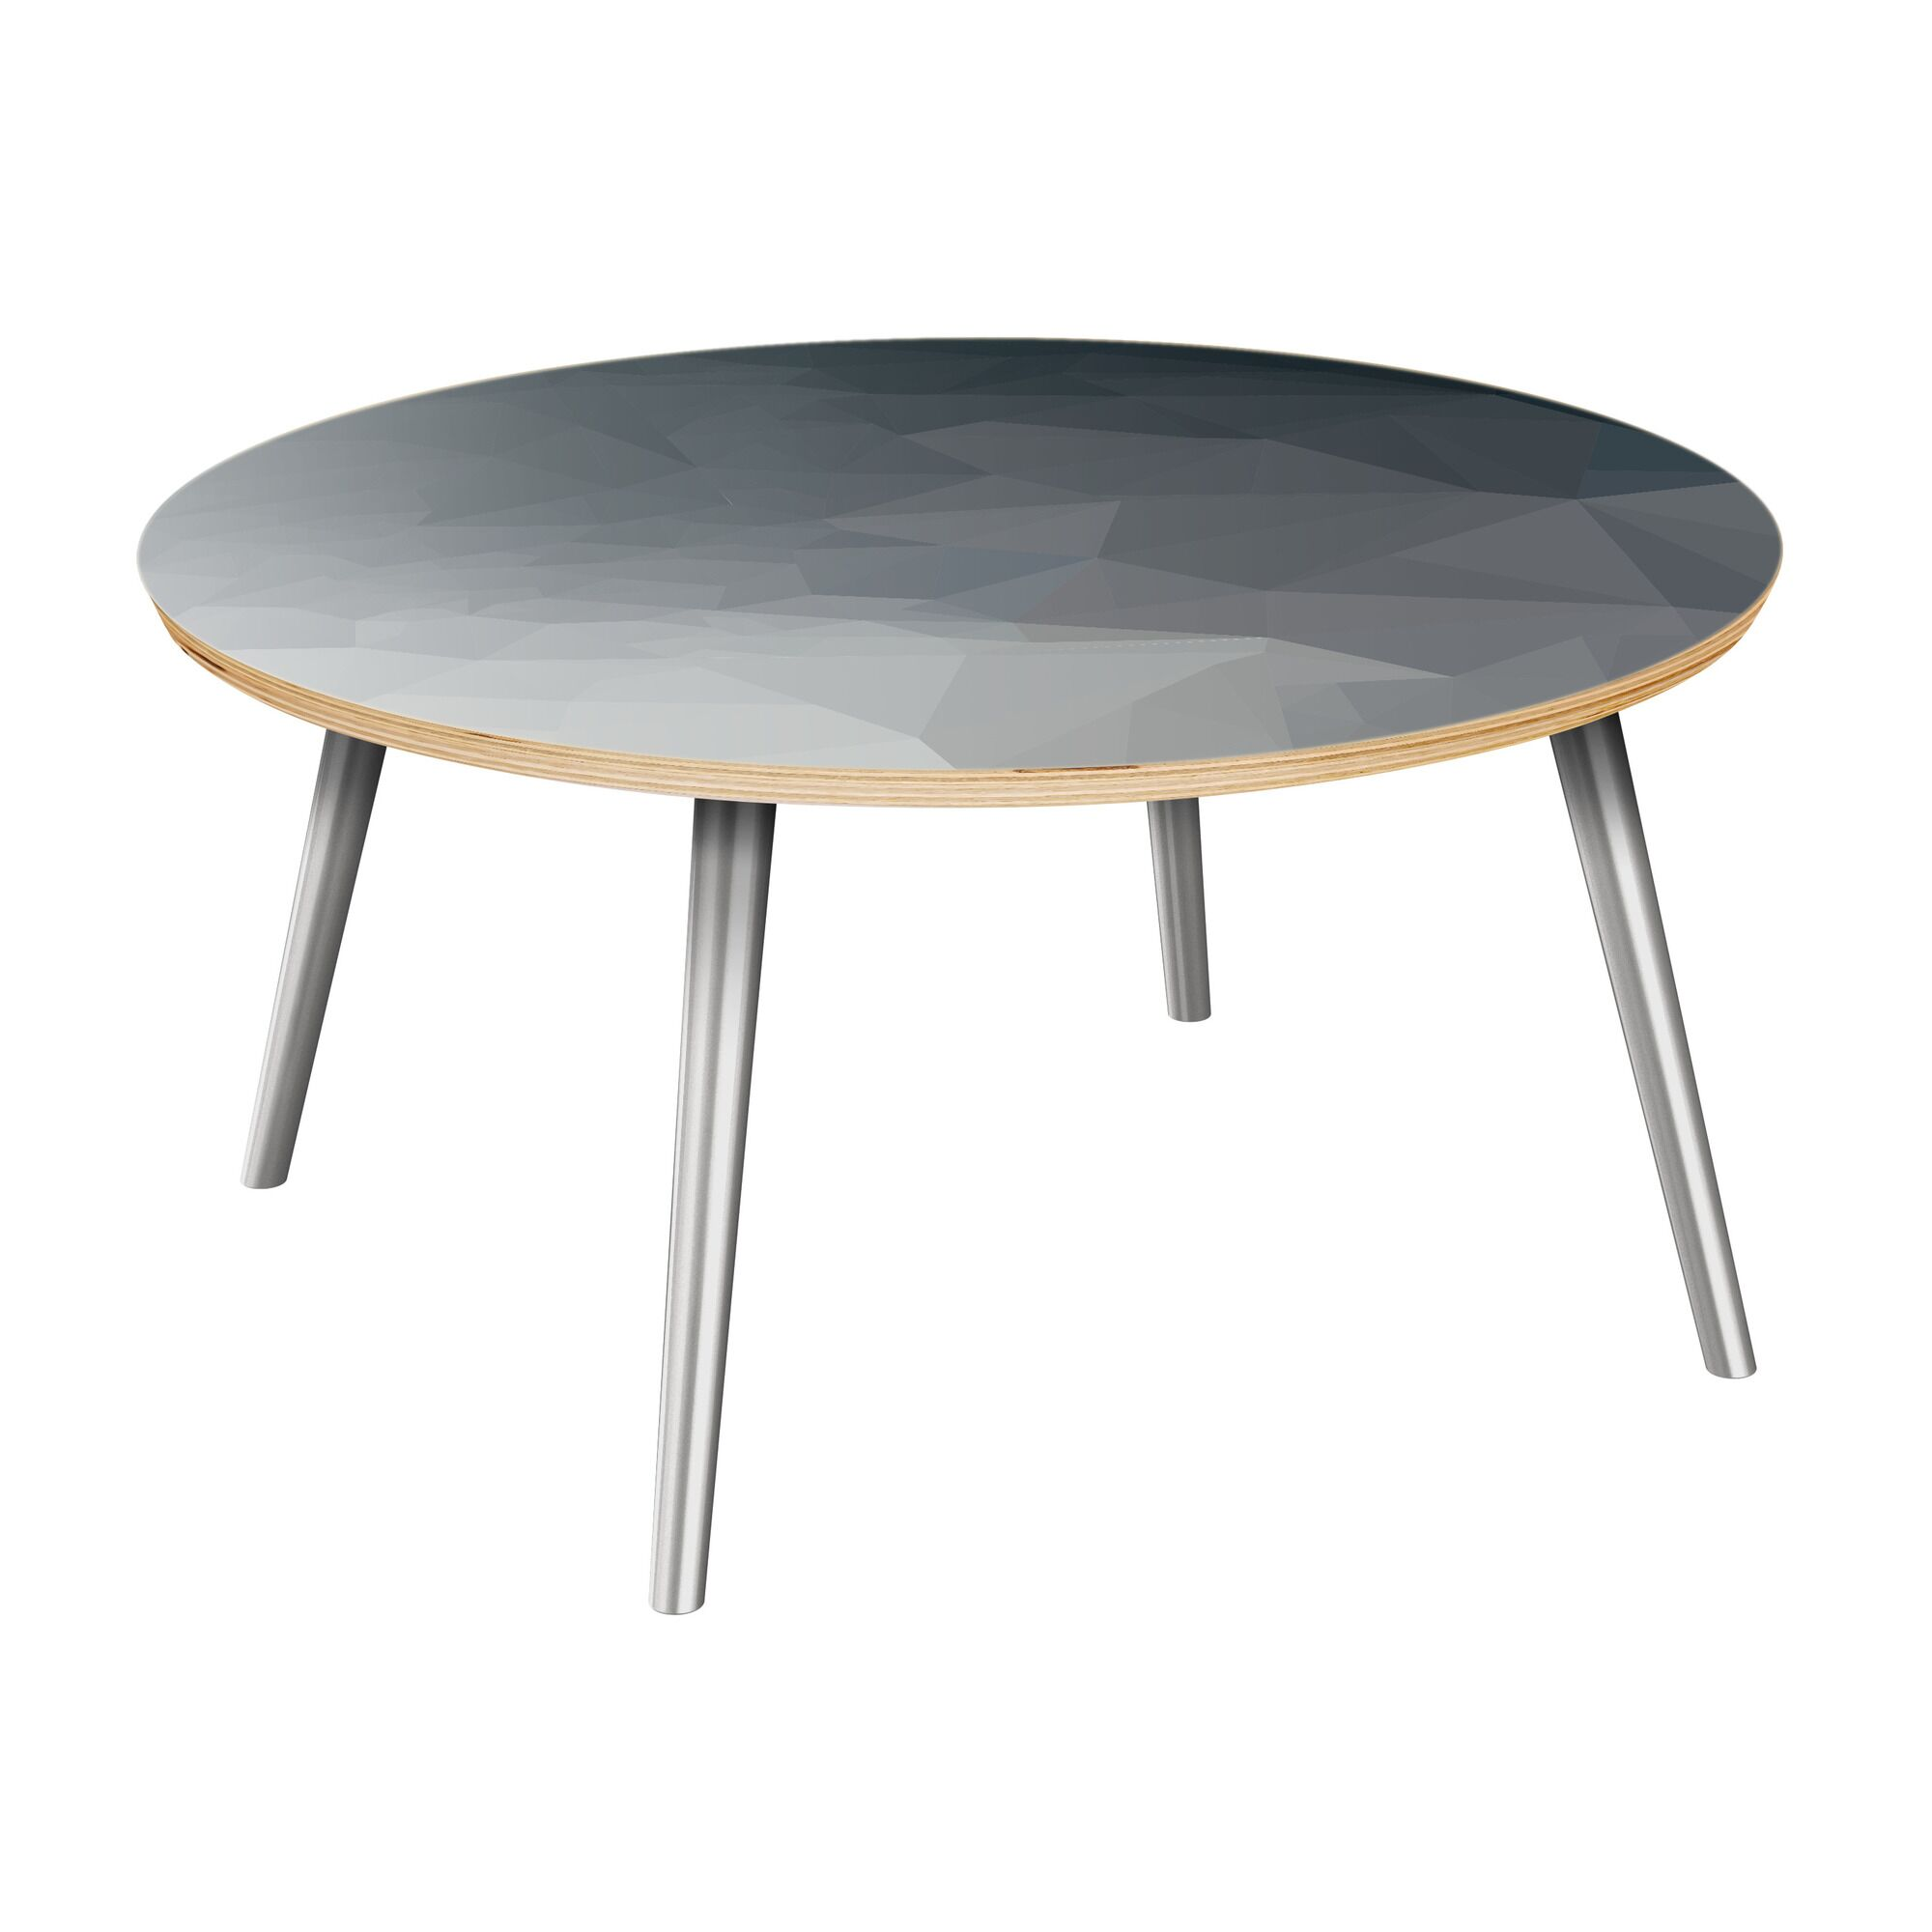 Janae Coffee Table Table Top Boarder Color: Natural, Table Base Color: Chrome, Table Top Color: Blue